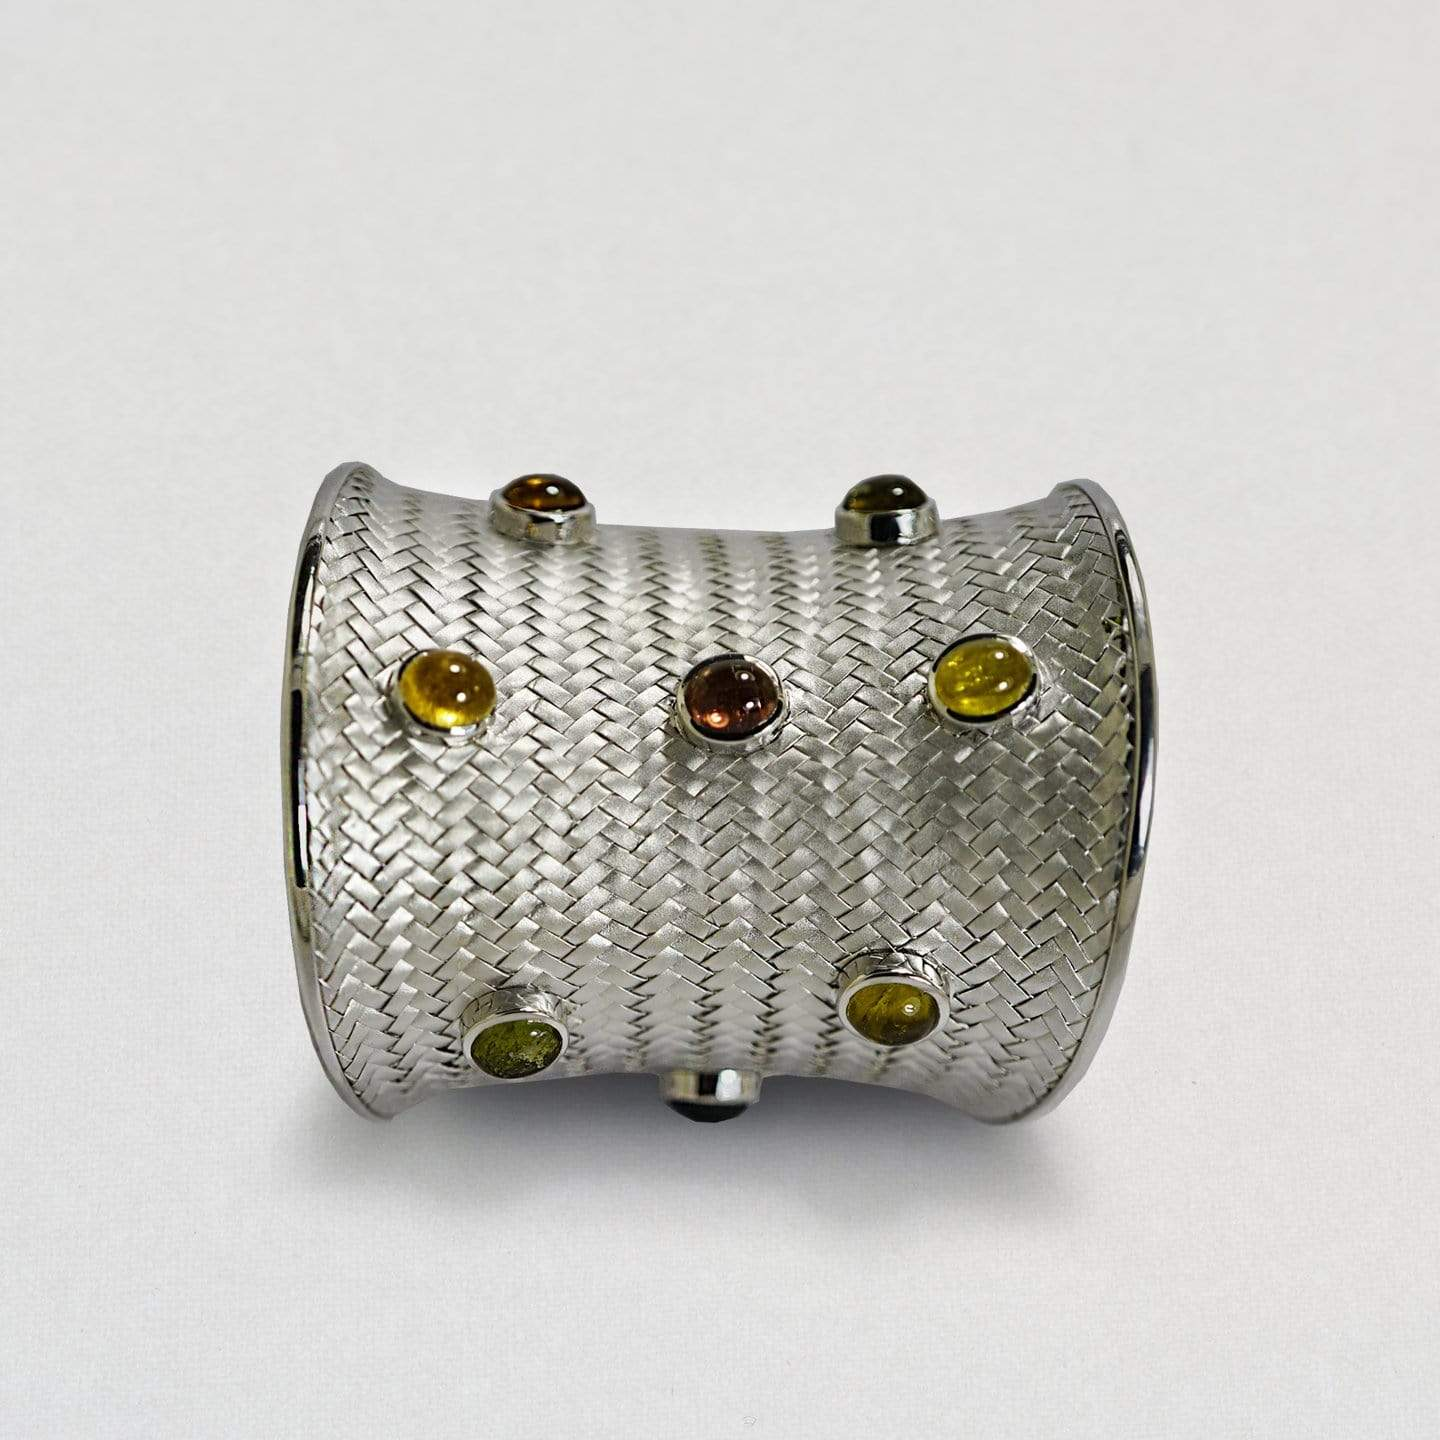 Perla Bangle, Exclusive, Rhodium, silver, spo-disabled, StoneColor:Orange, Style:Fantasy, Tourmaline Bangle